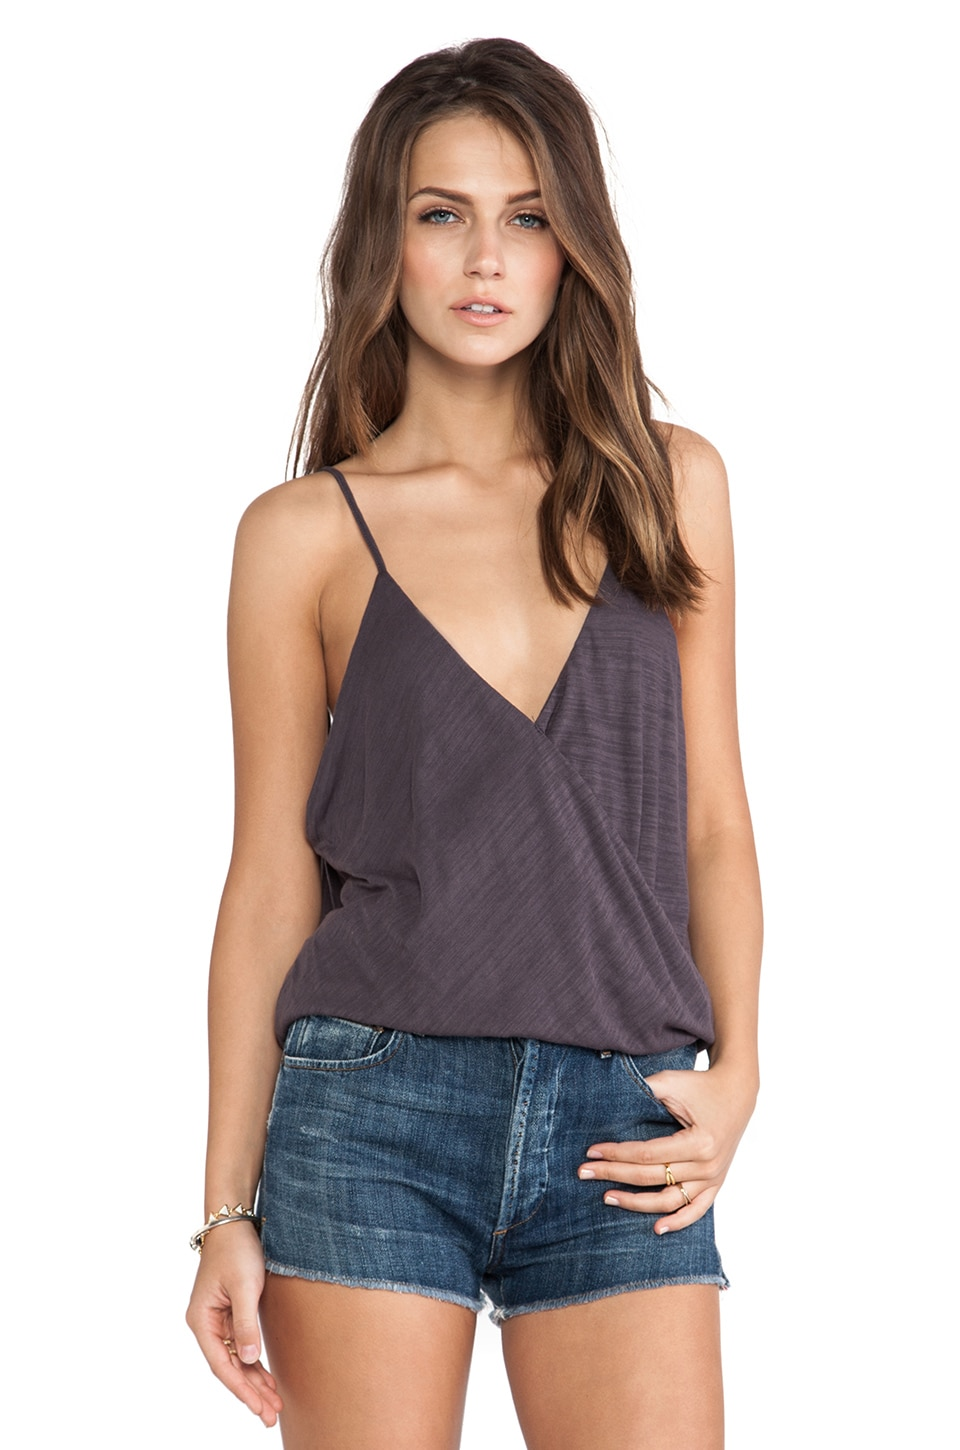 Blue Life Free Spirit Top in Faded Black